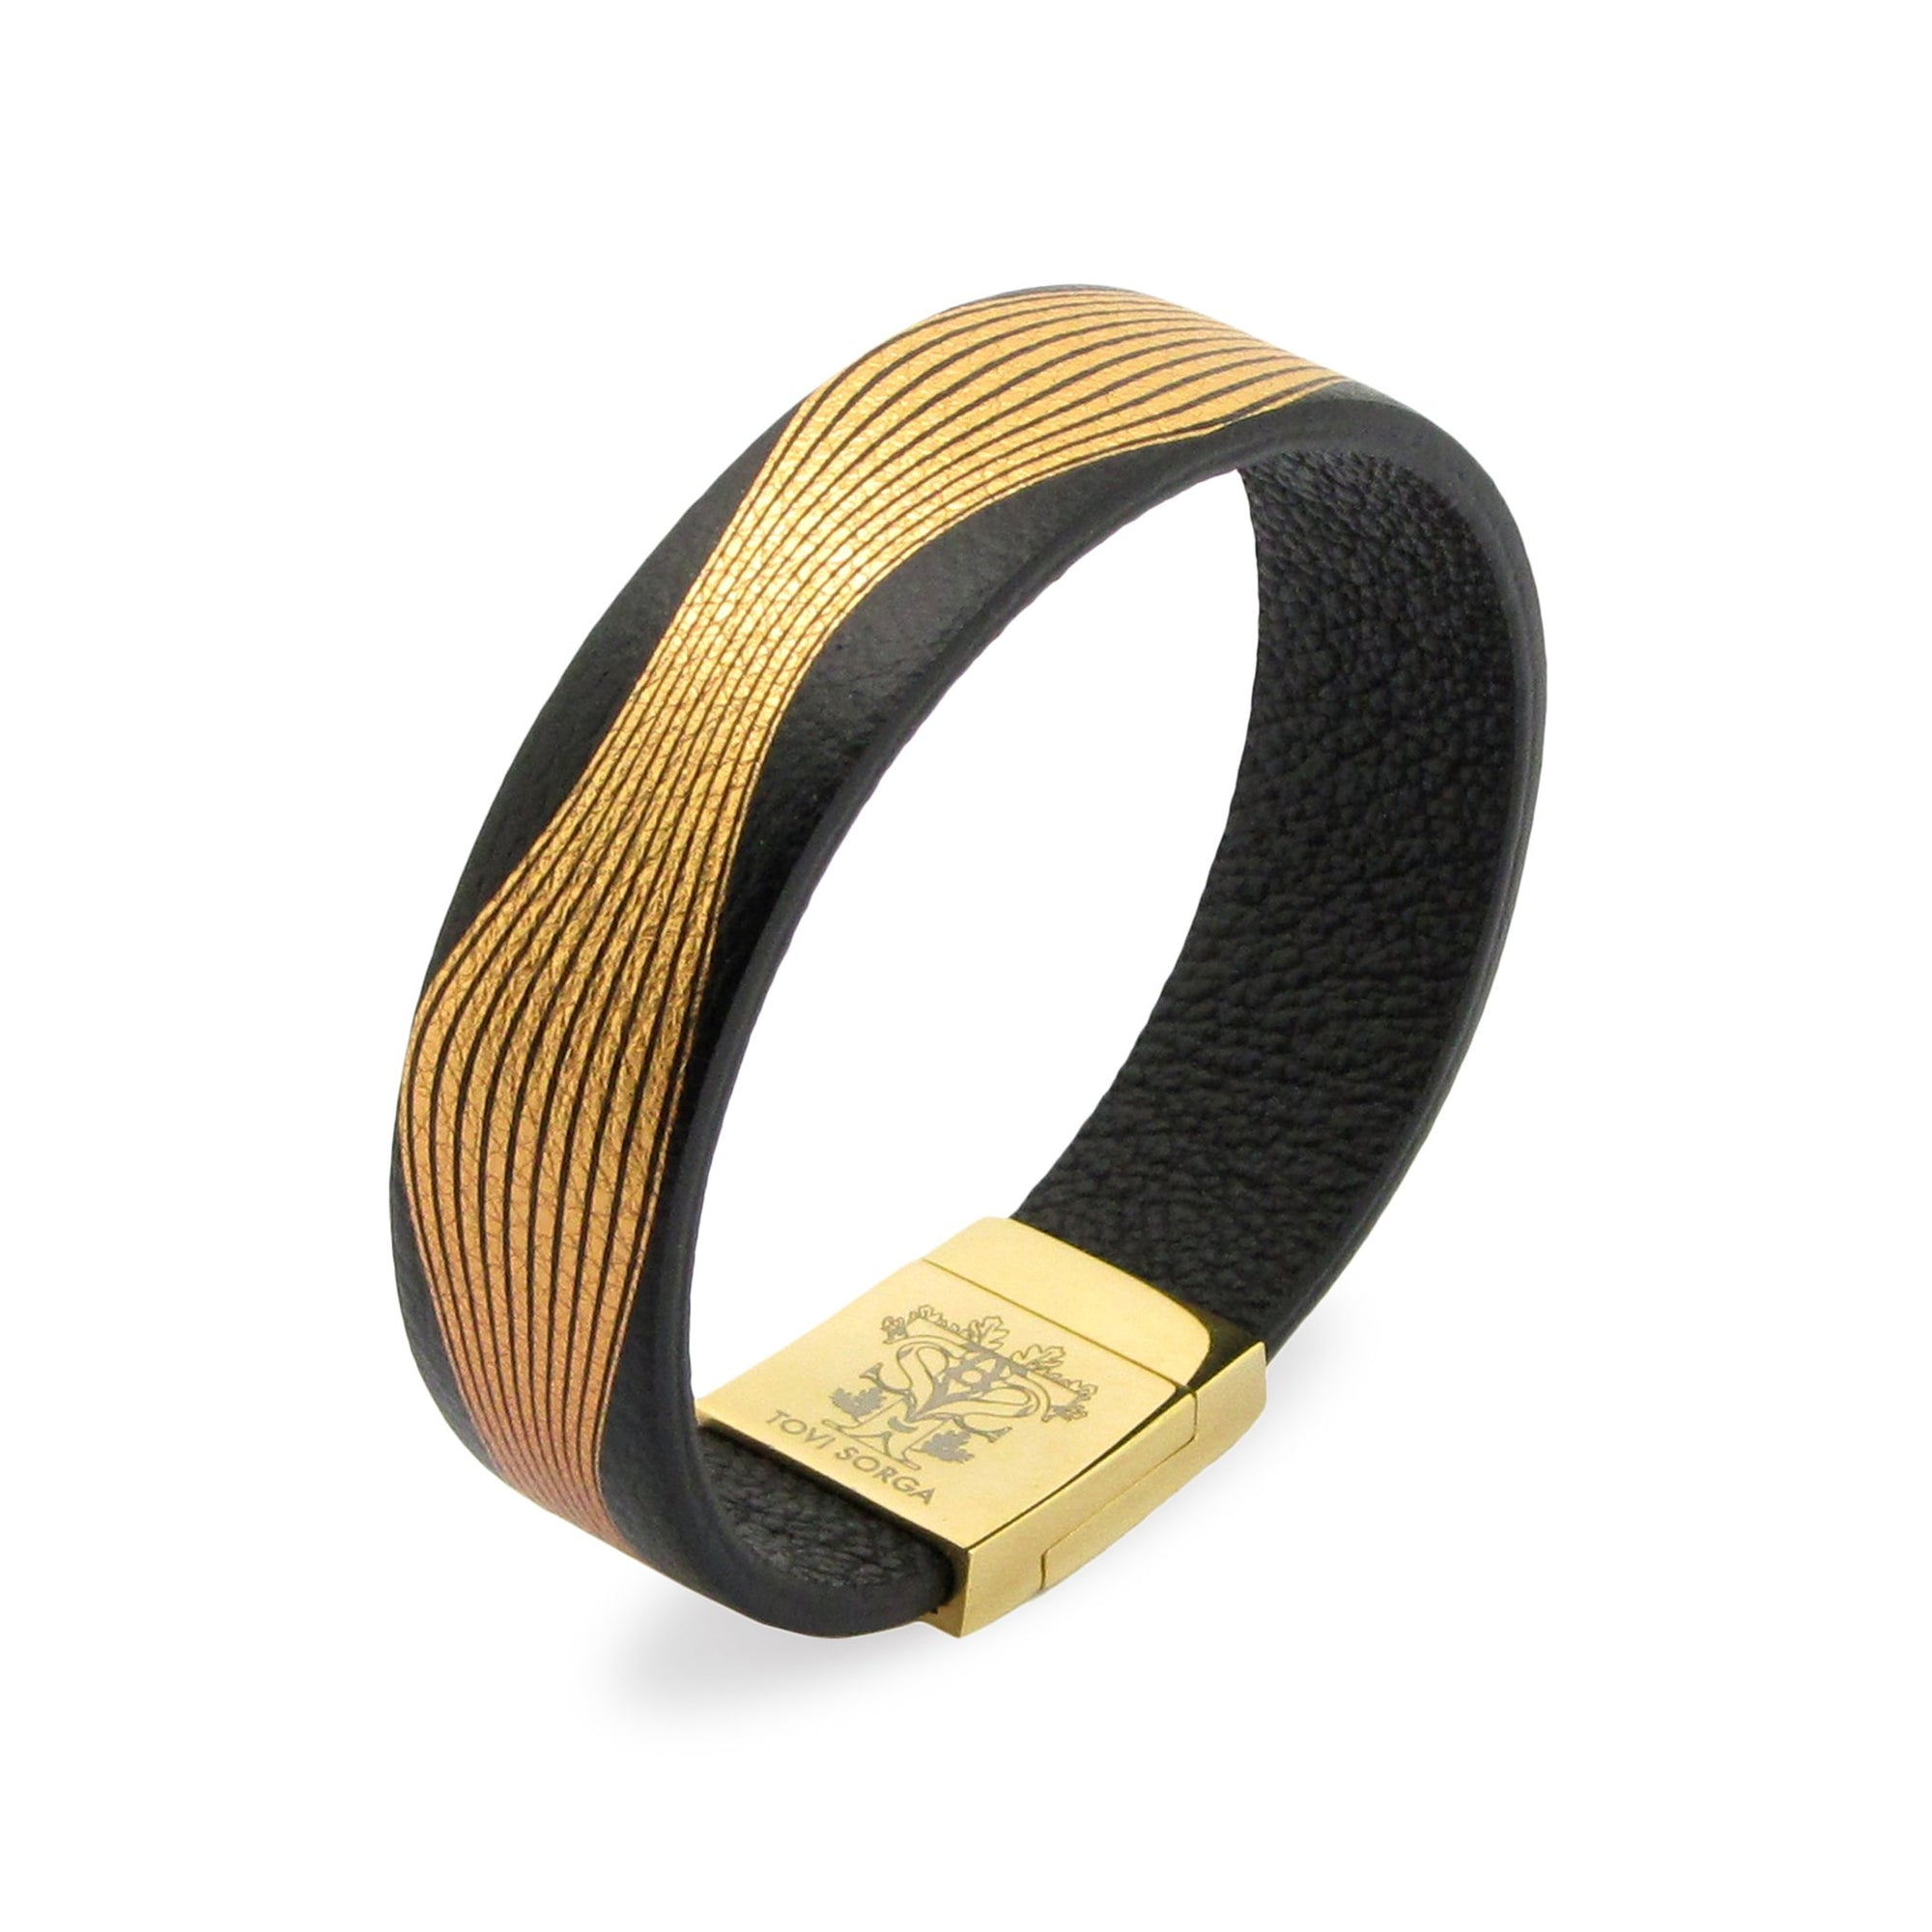 Leather Contactless Payment Bracelet: Rhythm Contactless Payment Bracelet Tovi Sorga Extra-Small Gold